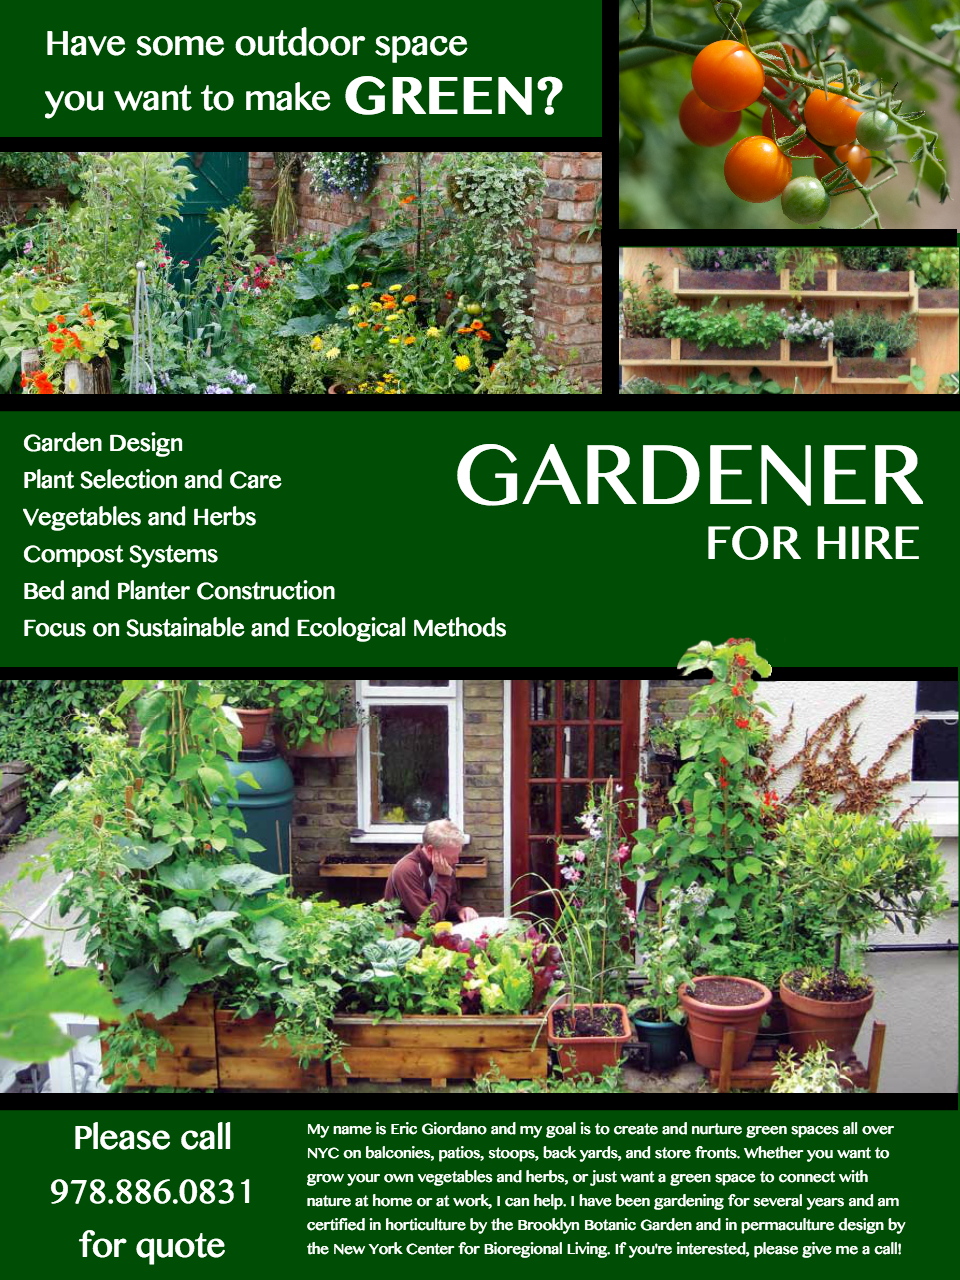 need feedback on this flyer for gardening services